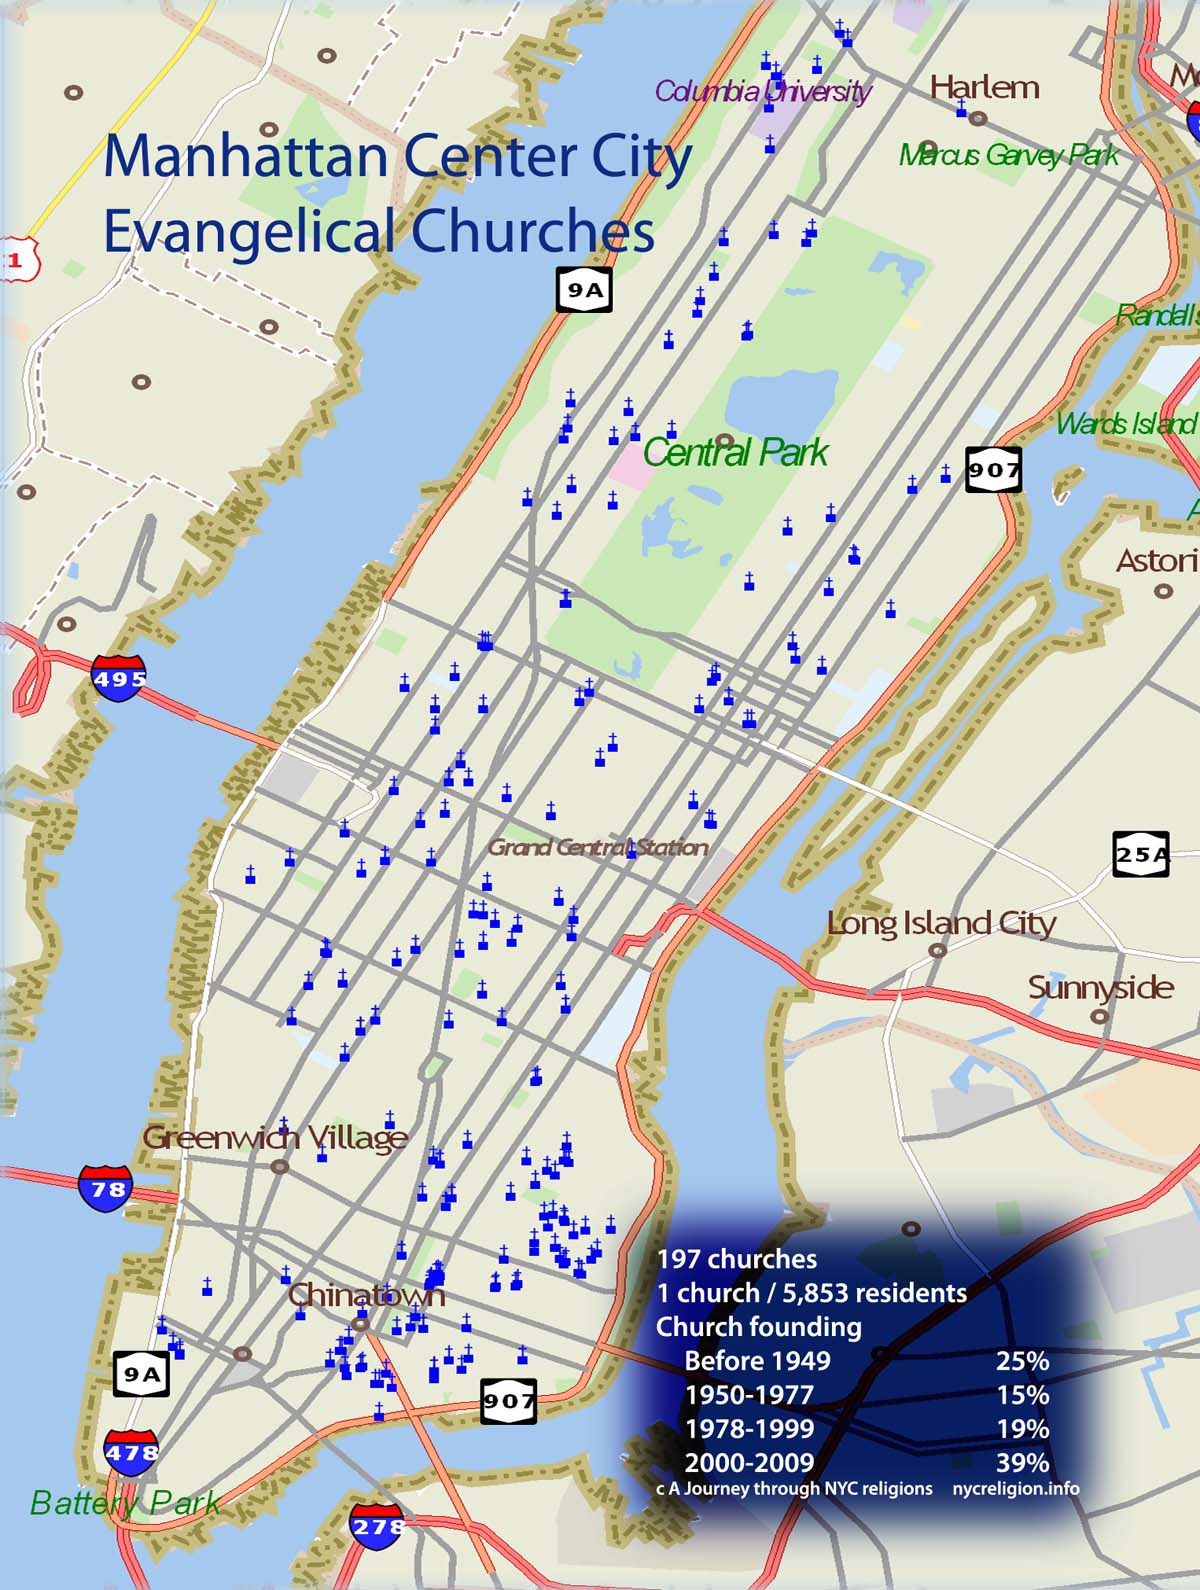 The Making of the Postsecular City The Manhattan Evangelicals